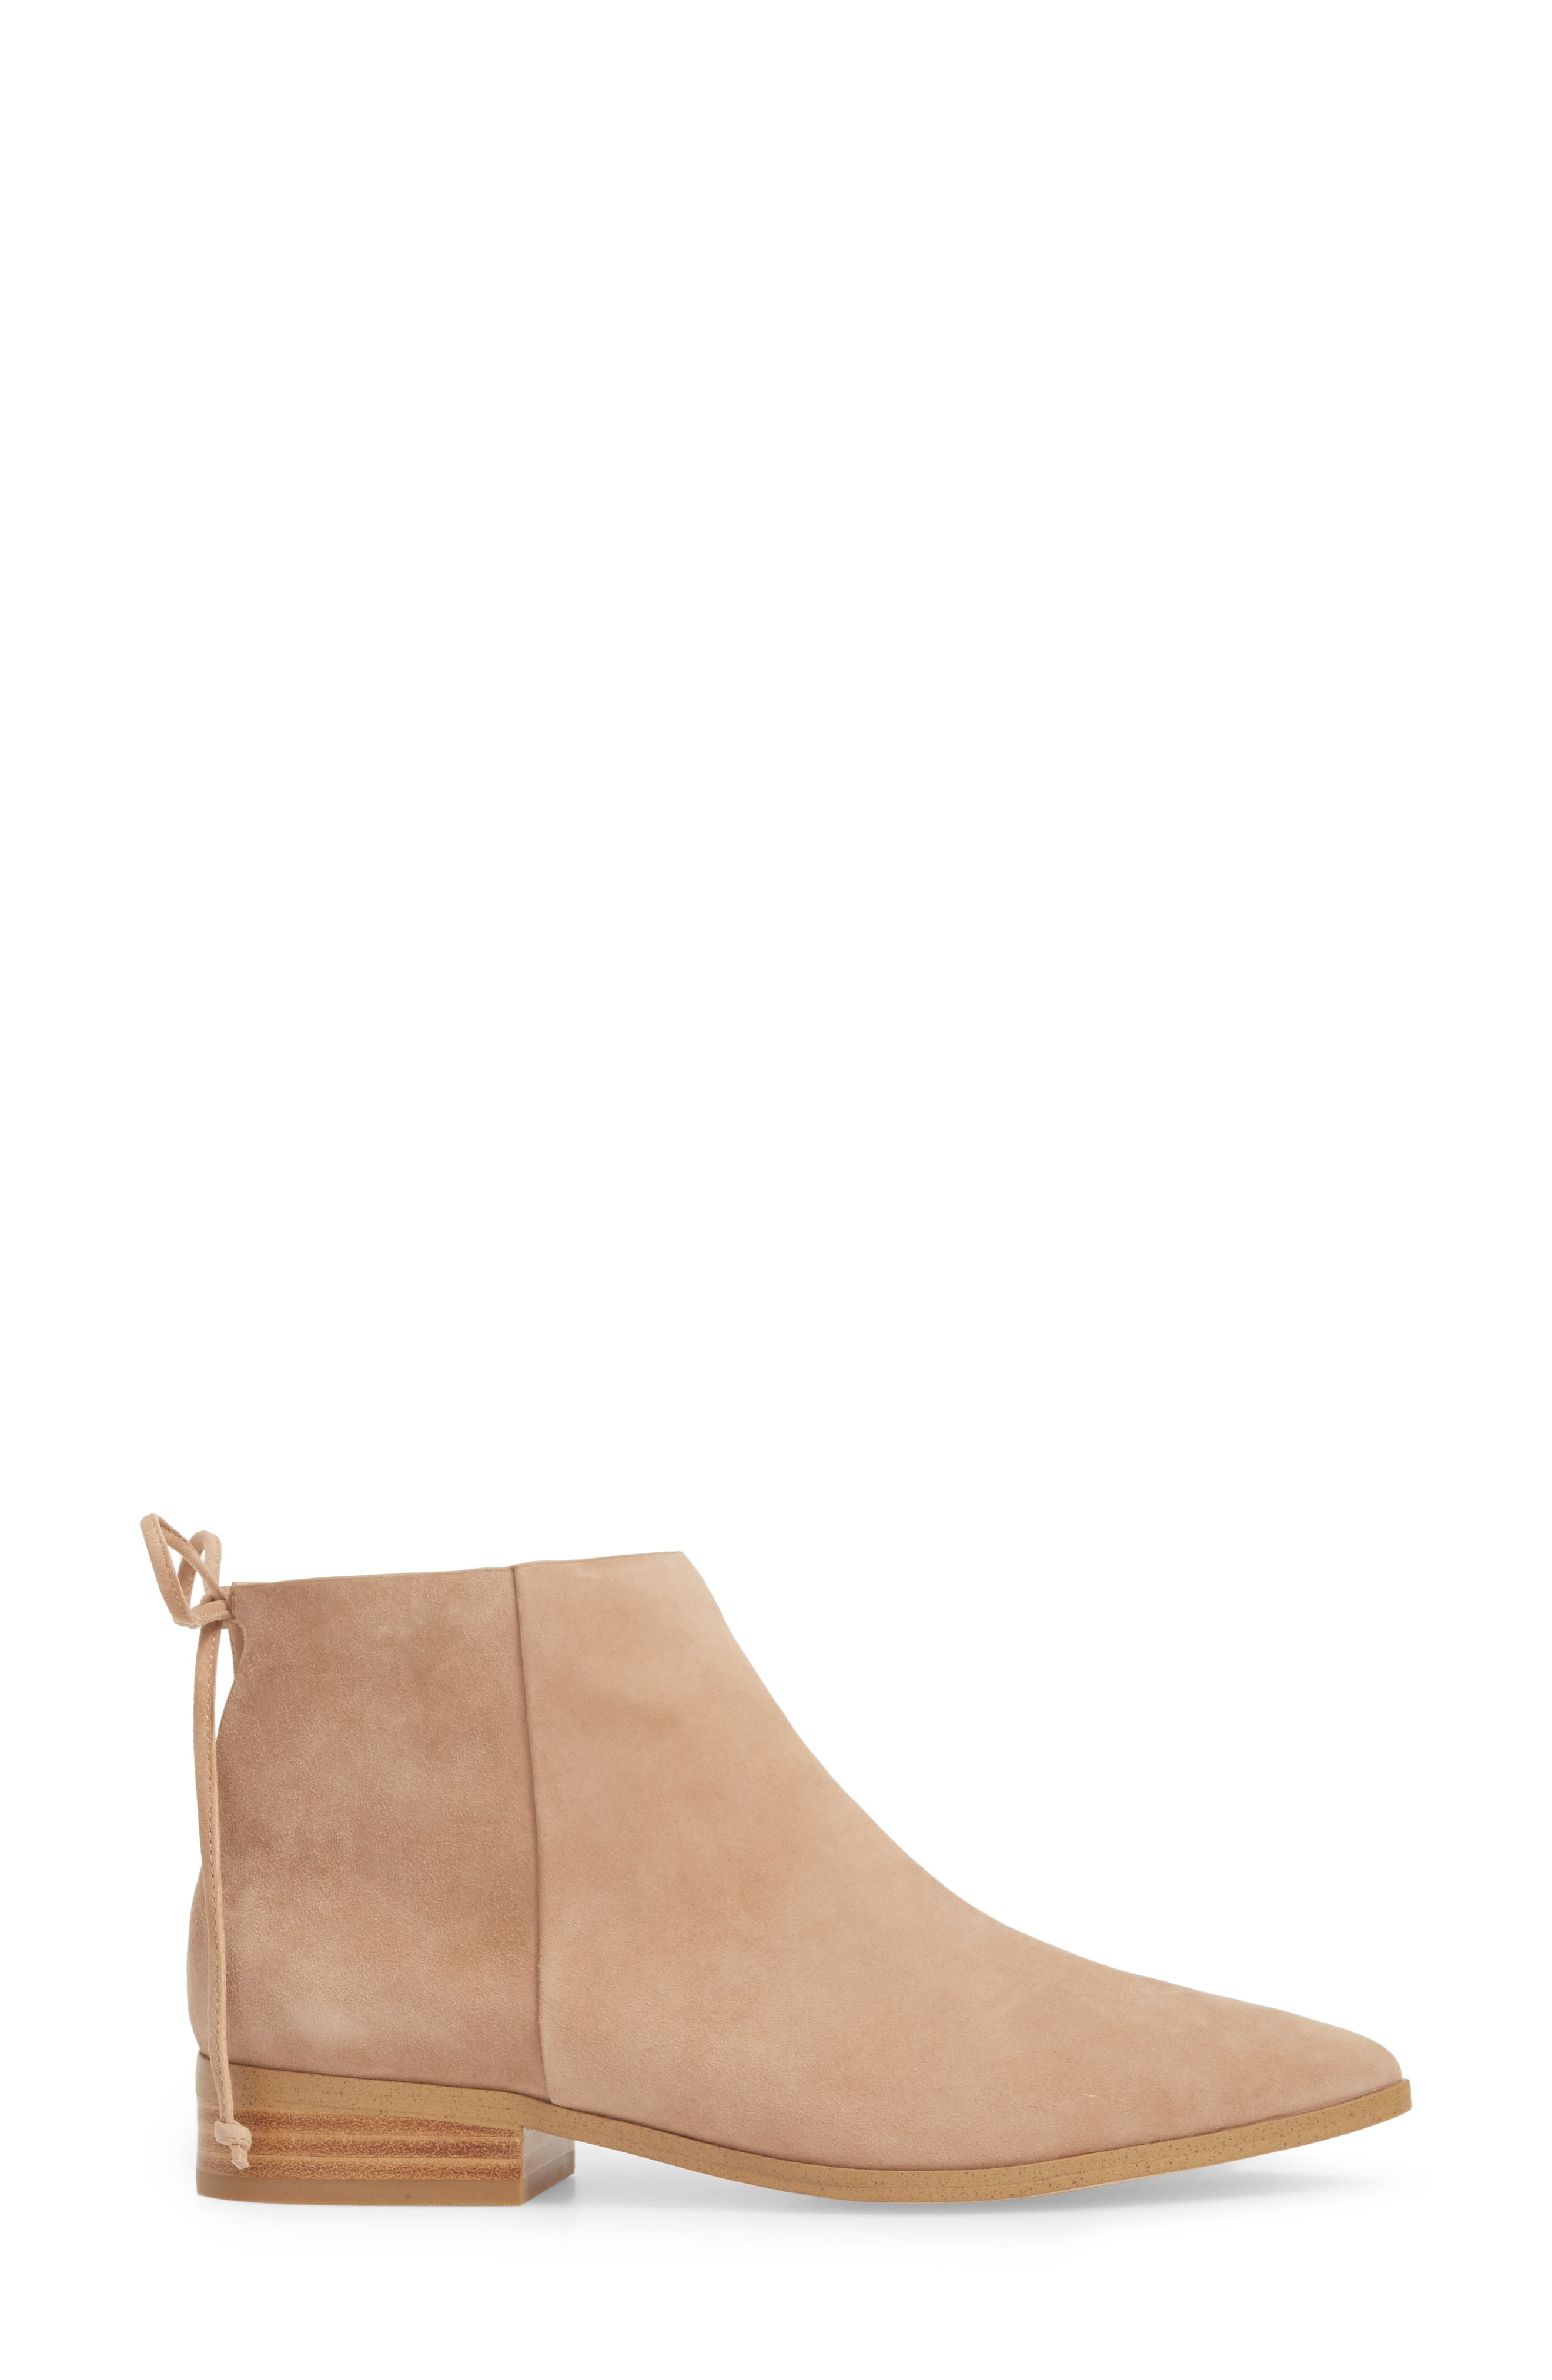 Niva Bootie,                             Alternate thumbnail 3, color,                             DRIFTWOOD SUEDE